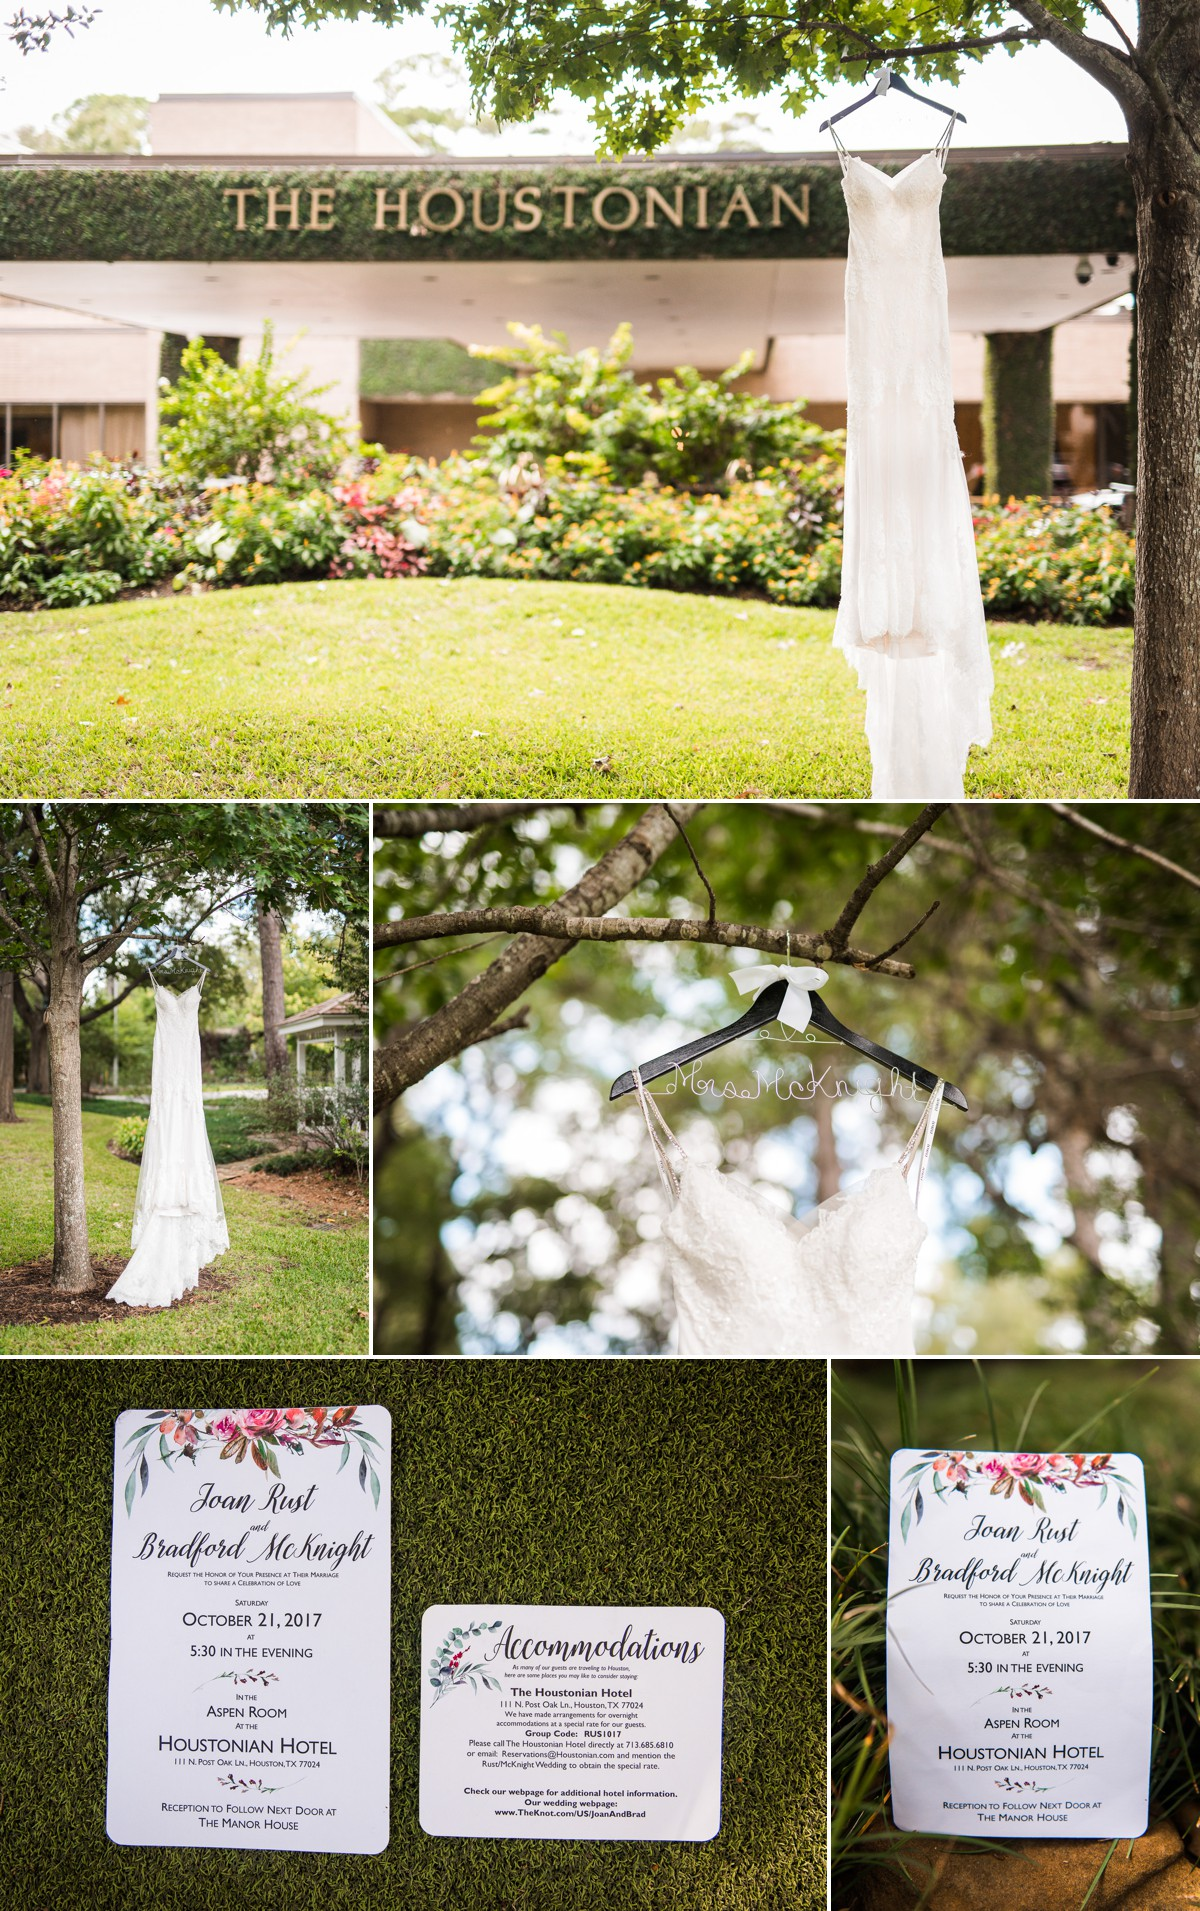 Manor House Wedding at The Houstonian Hotel Wedding Dress and Invitations